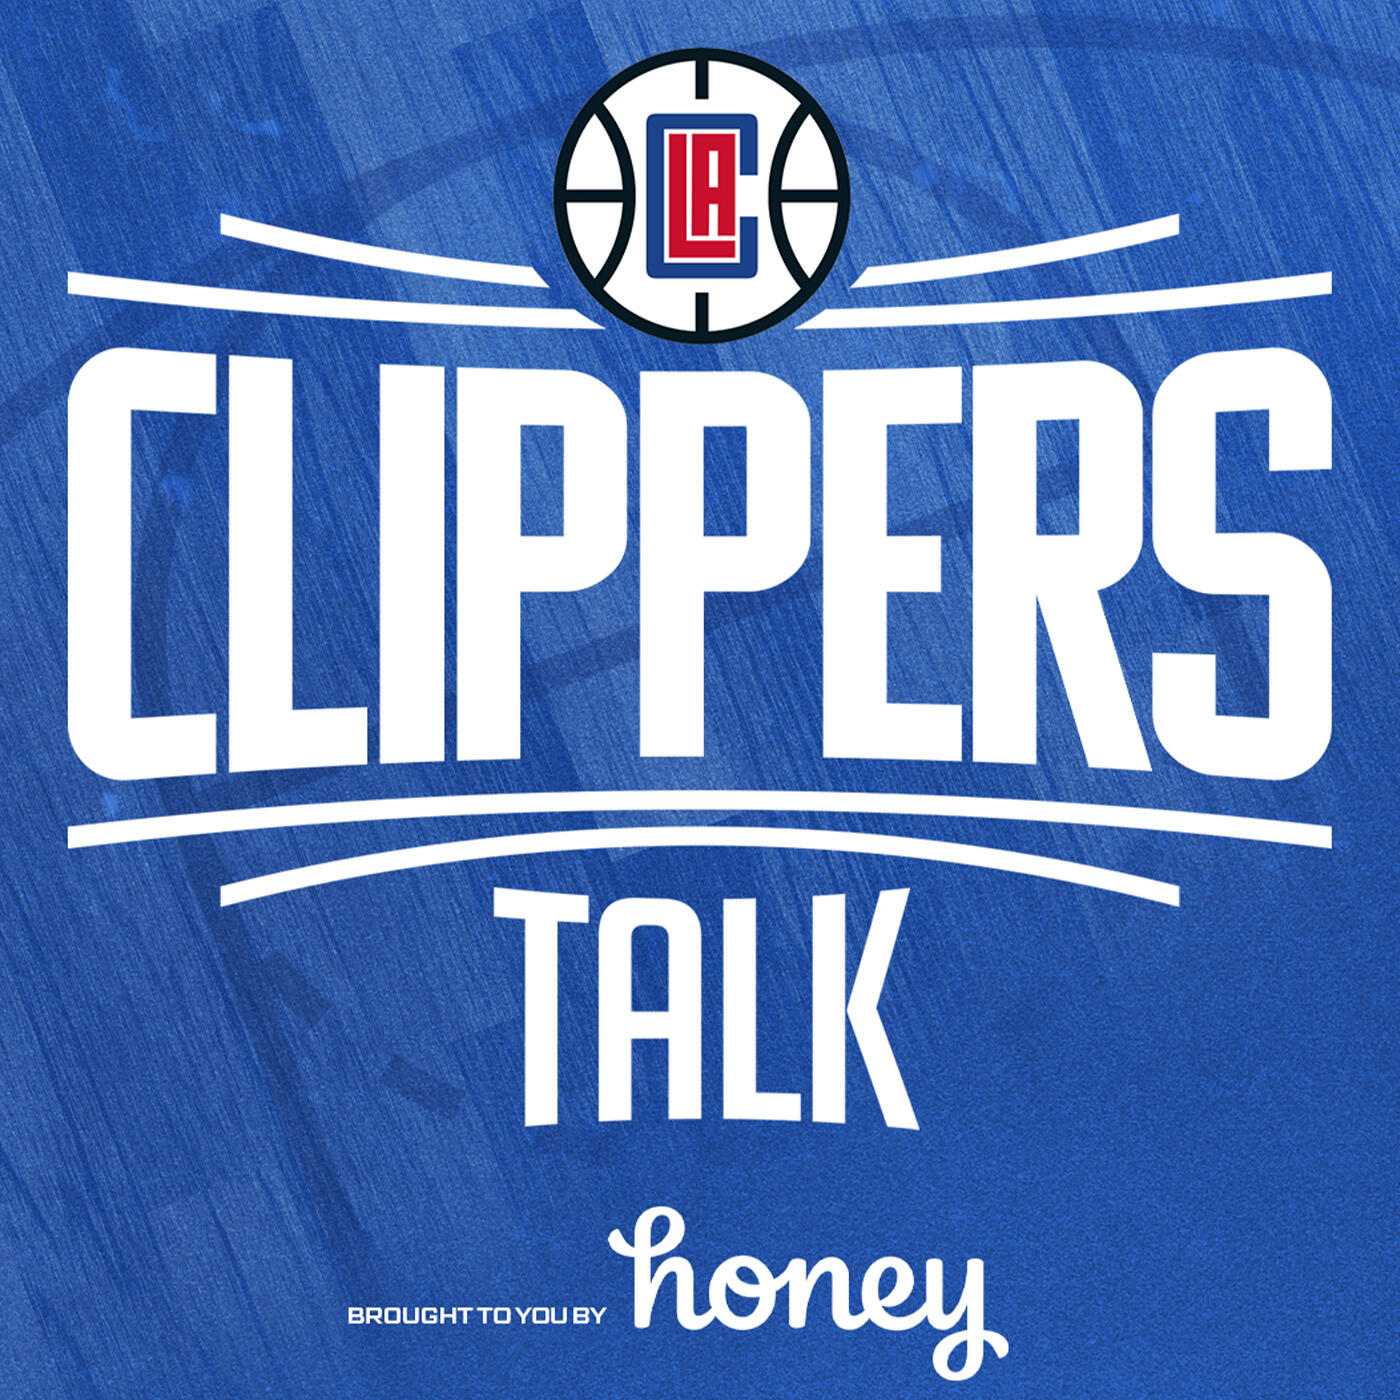 Listen to the Clippers Talk Episode - The Clippers lose 119-91 to Milwaukee on iHeartRadio   iHeartRadio